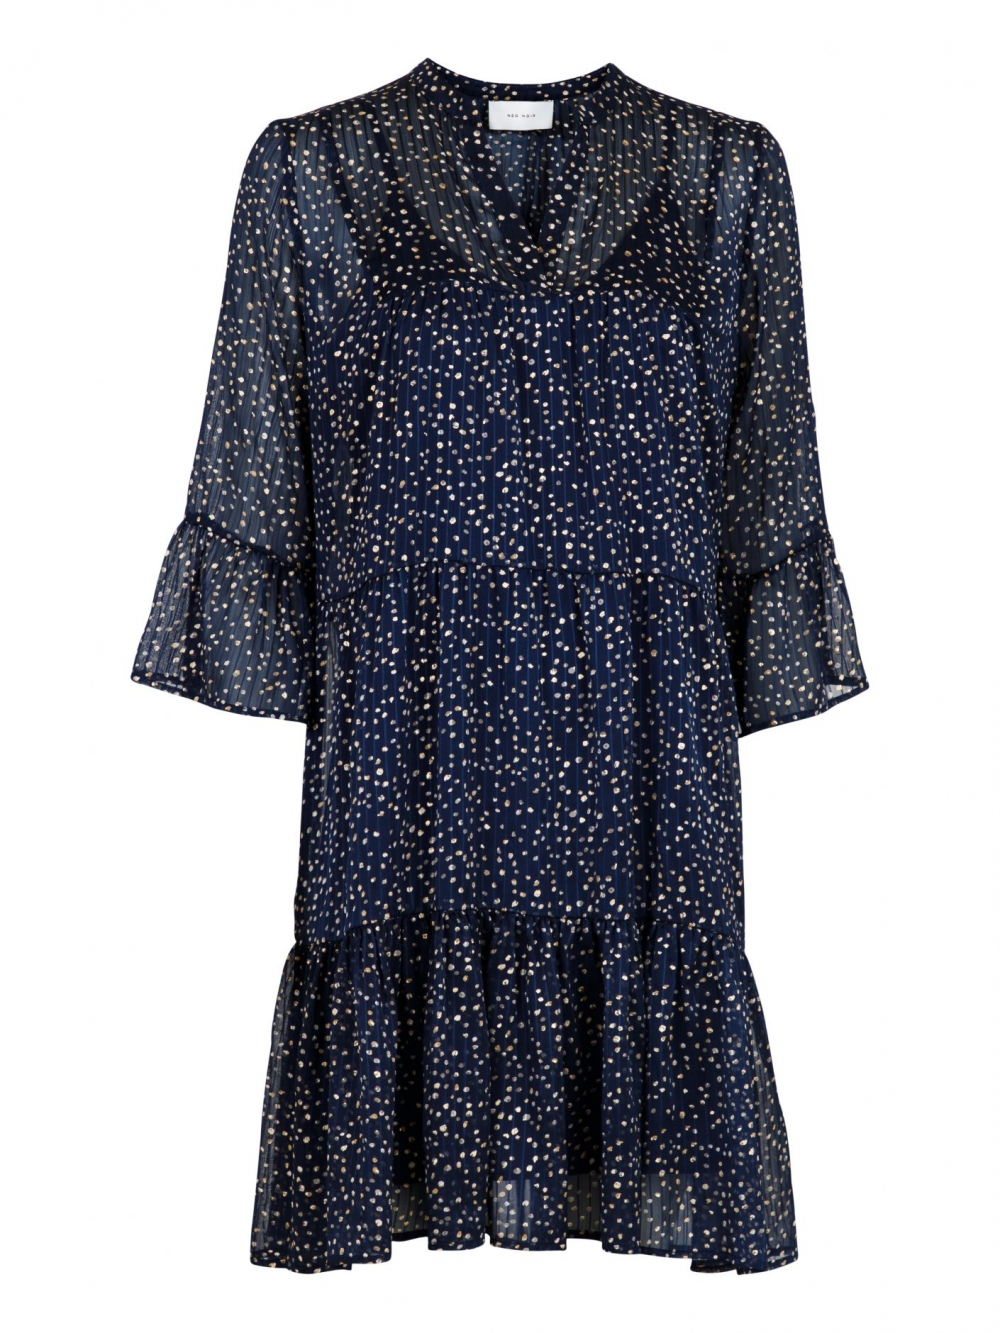 Neo Noir Gunvor Sparkle Dress Navy